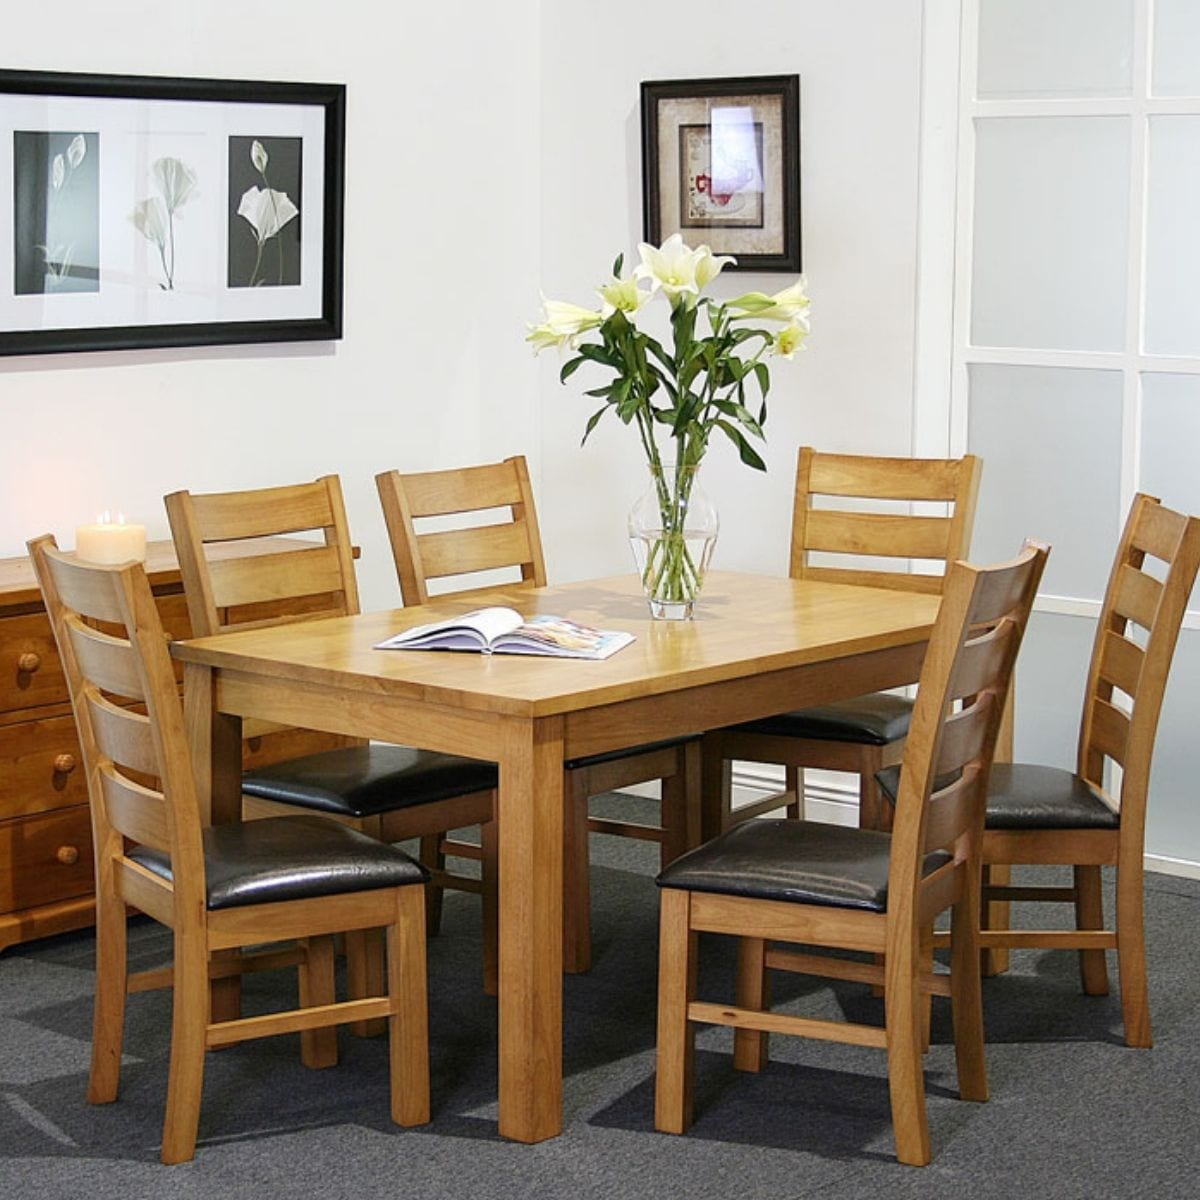 https://corcoransfurniture.ie/product/dallas-dining-table/